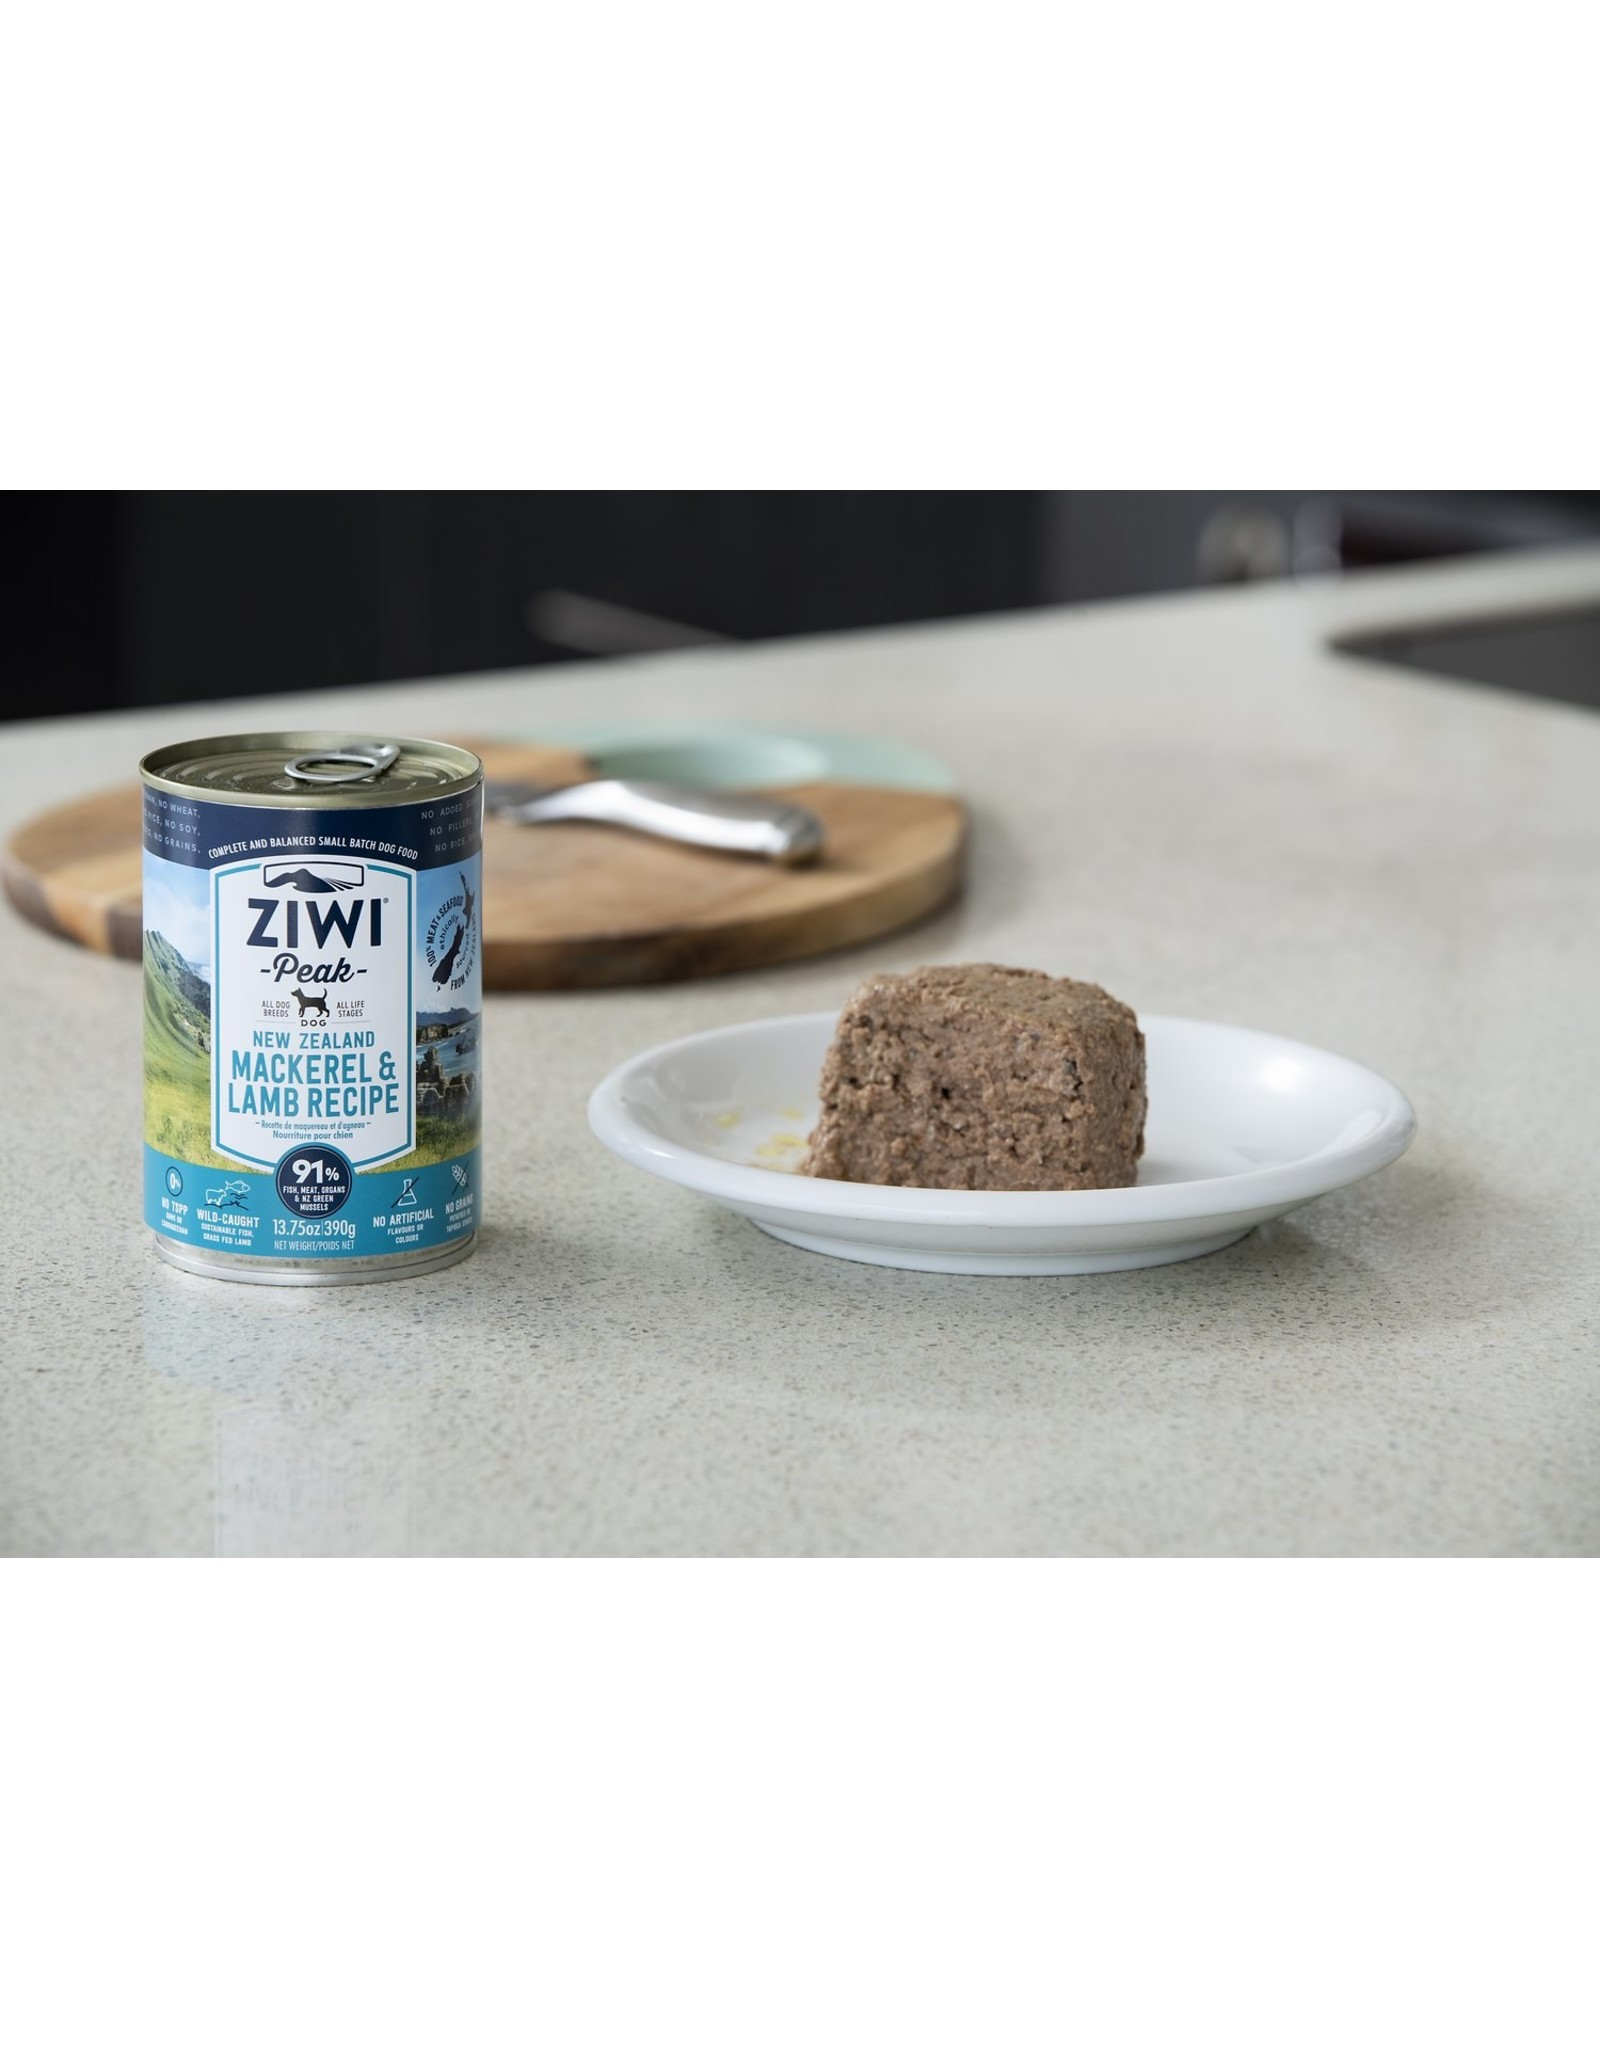 Ziwi Peak ZIWI PEAK DOG NEW ZEALAND MACKEREL & LAMB RECIPE 13.75OZ